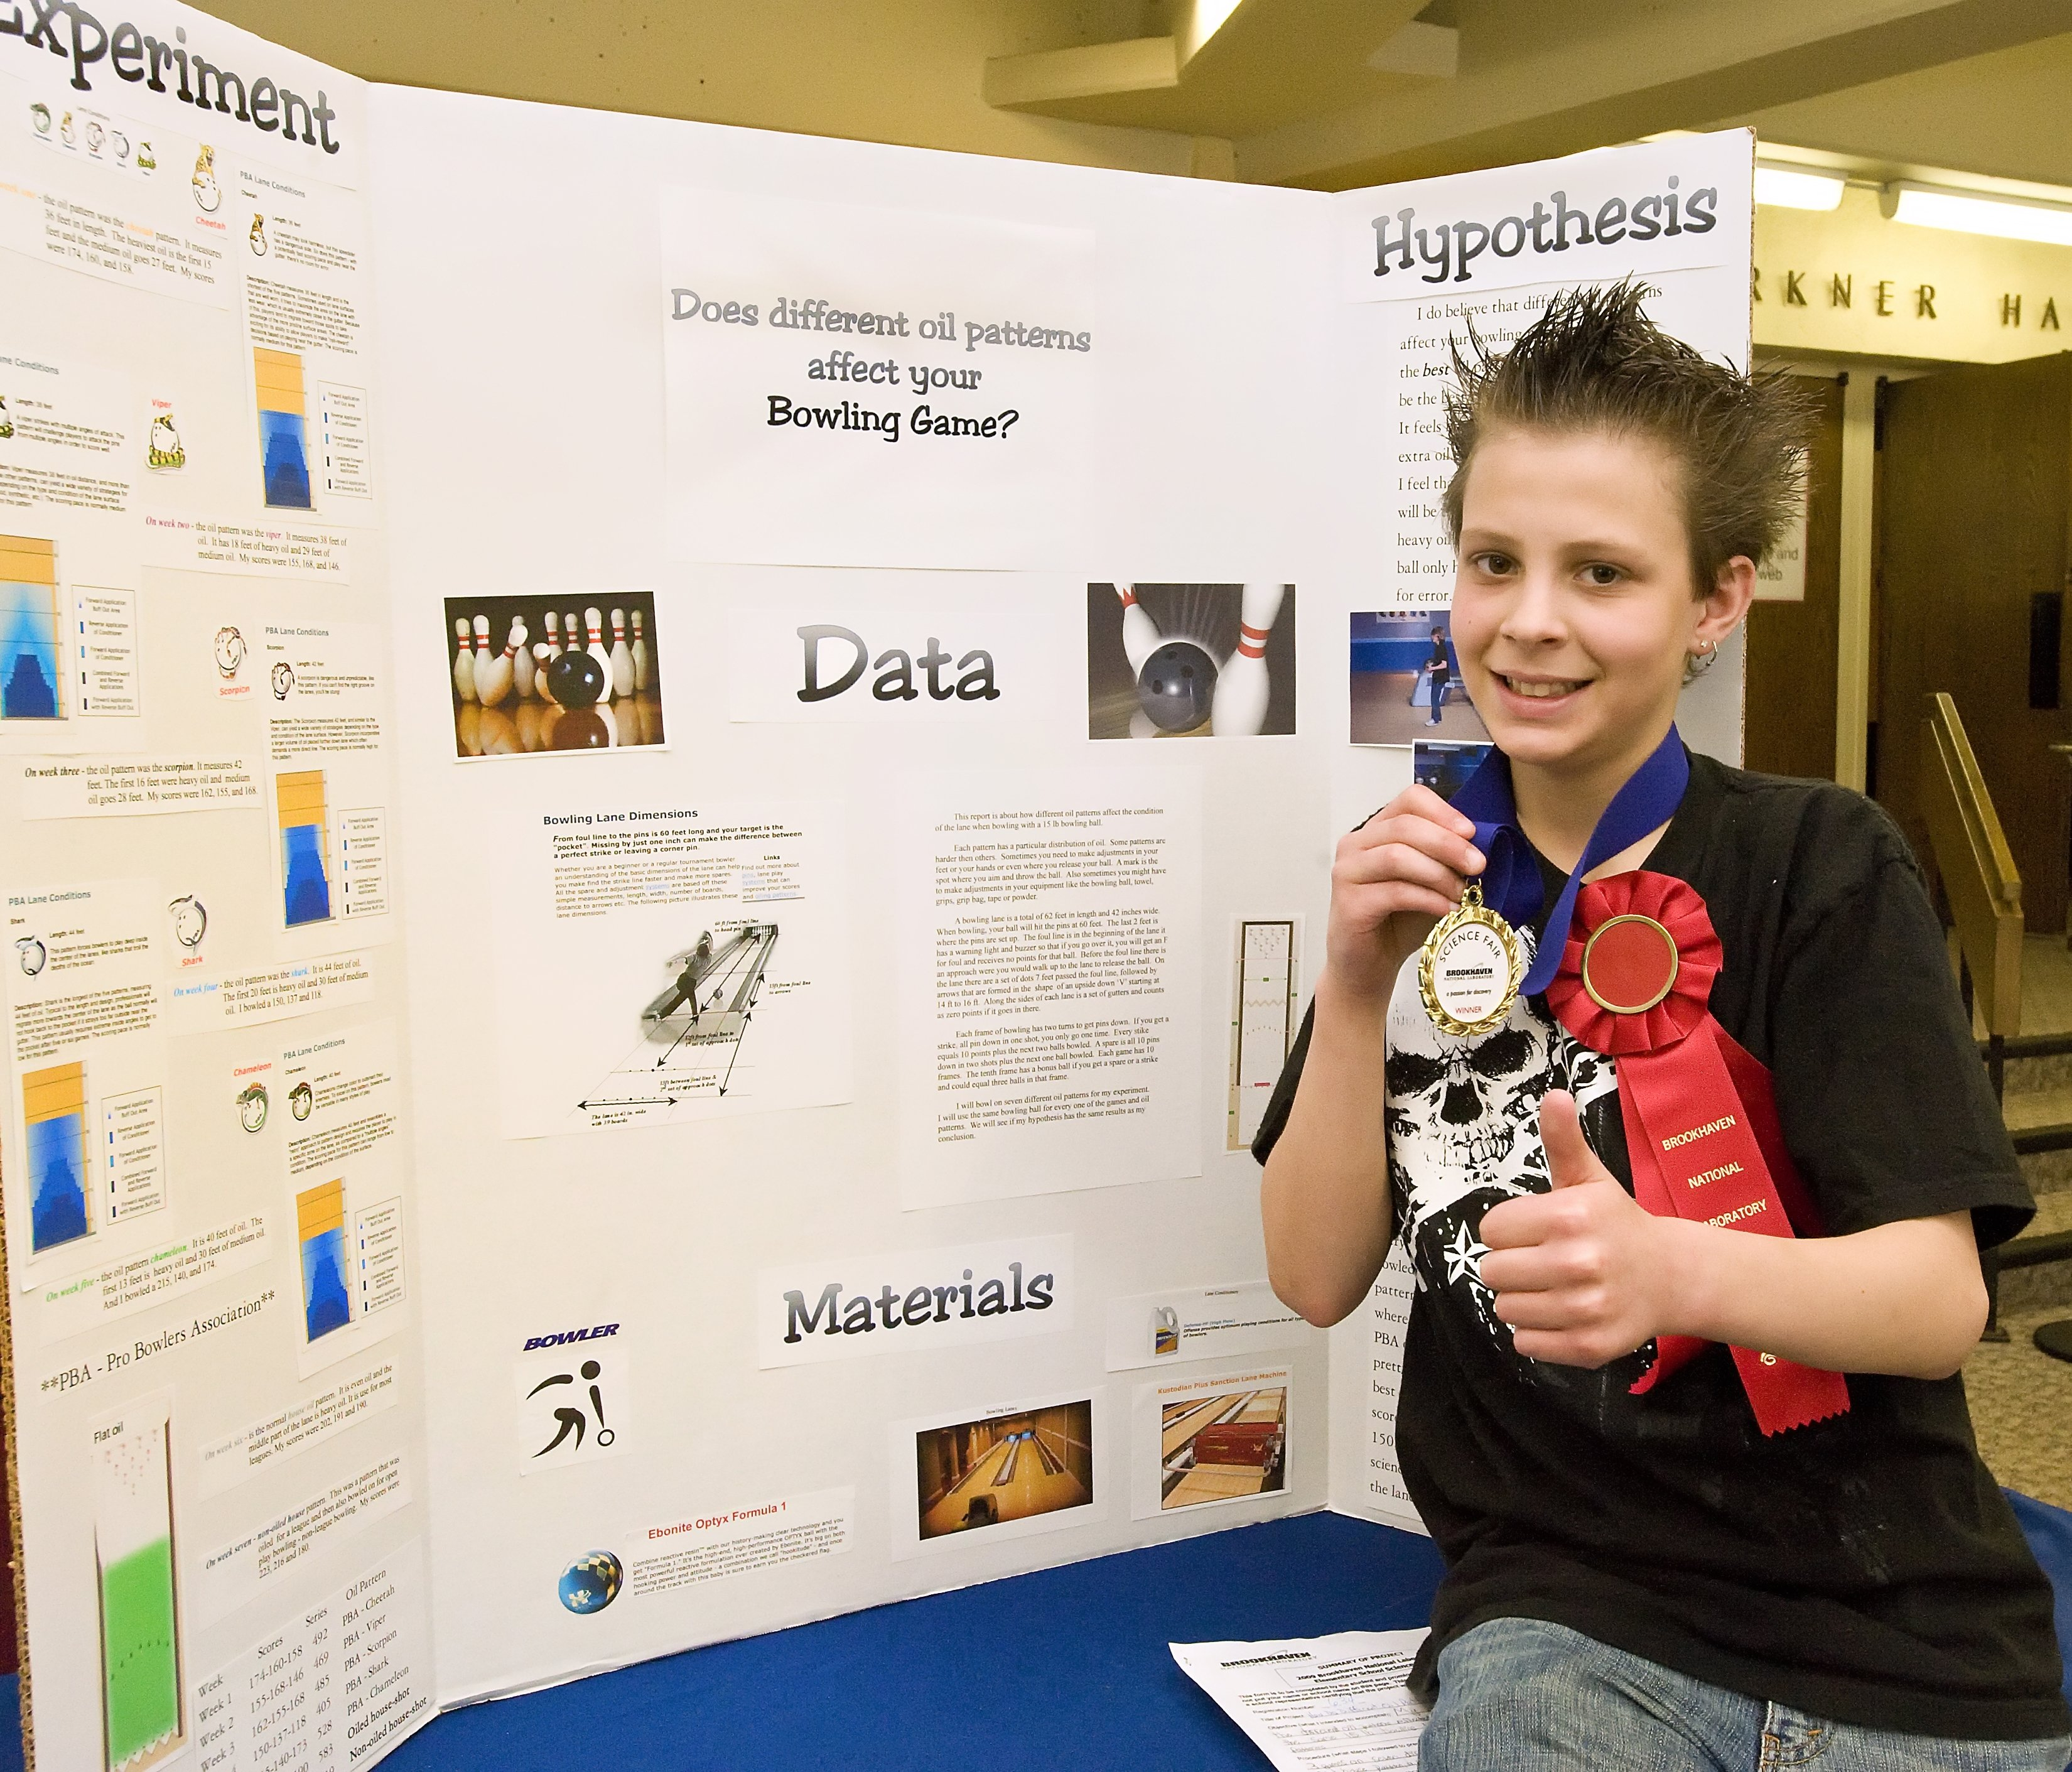 10 Lovely Science Fair Ideas 6Th Grade from ant control to wind energy winning projects at brookhaven 51 2020